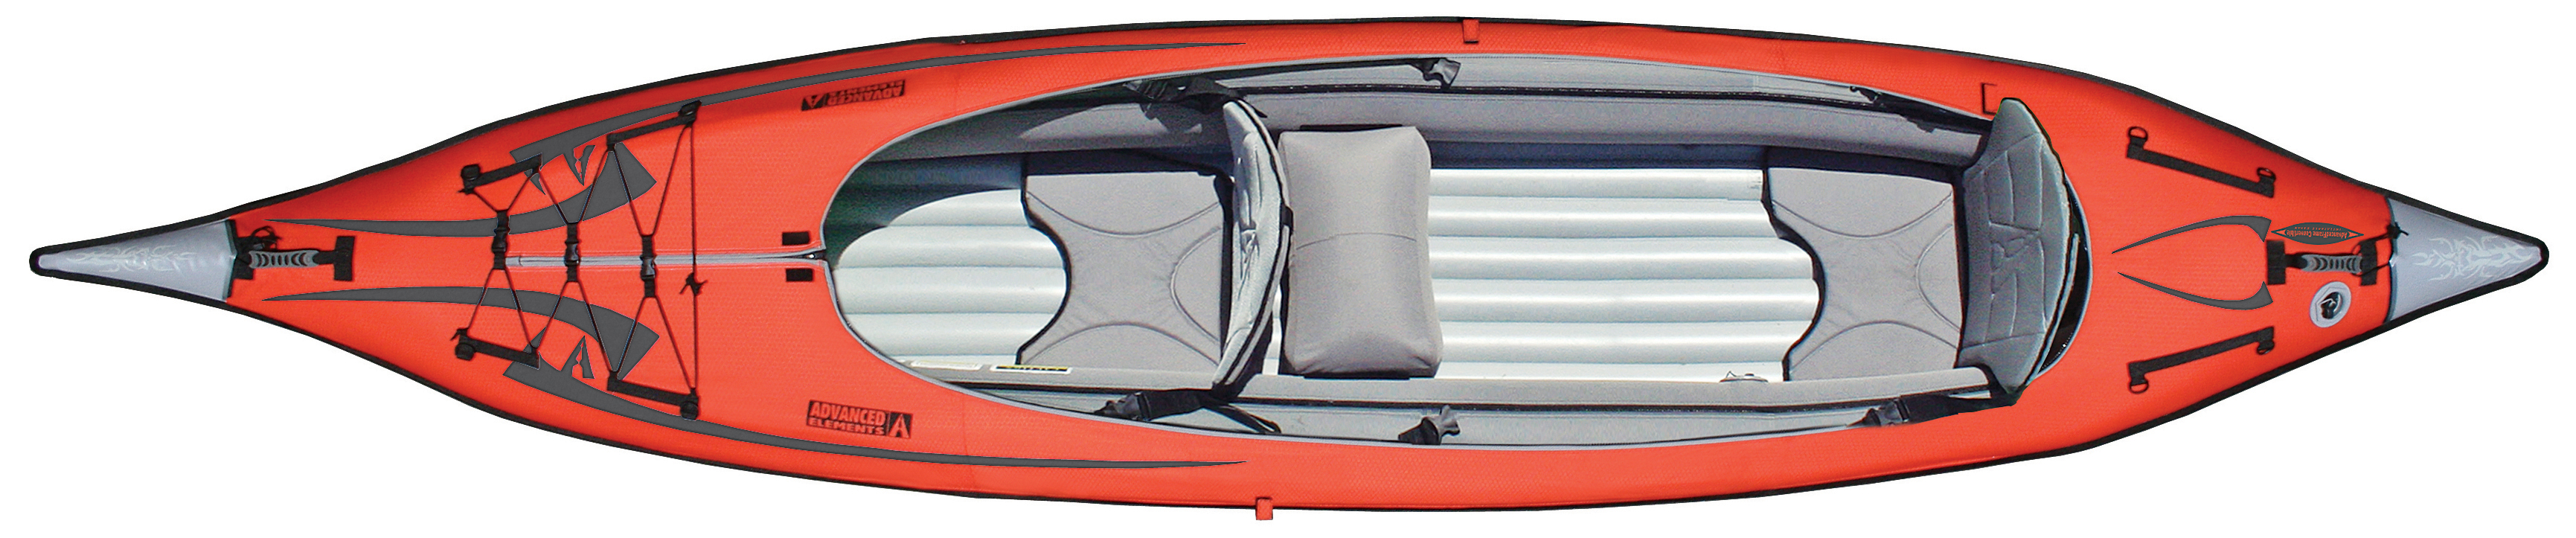 Kayaks: AdvancedFrame Convertible by Advanced Elements - Image 4677